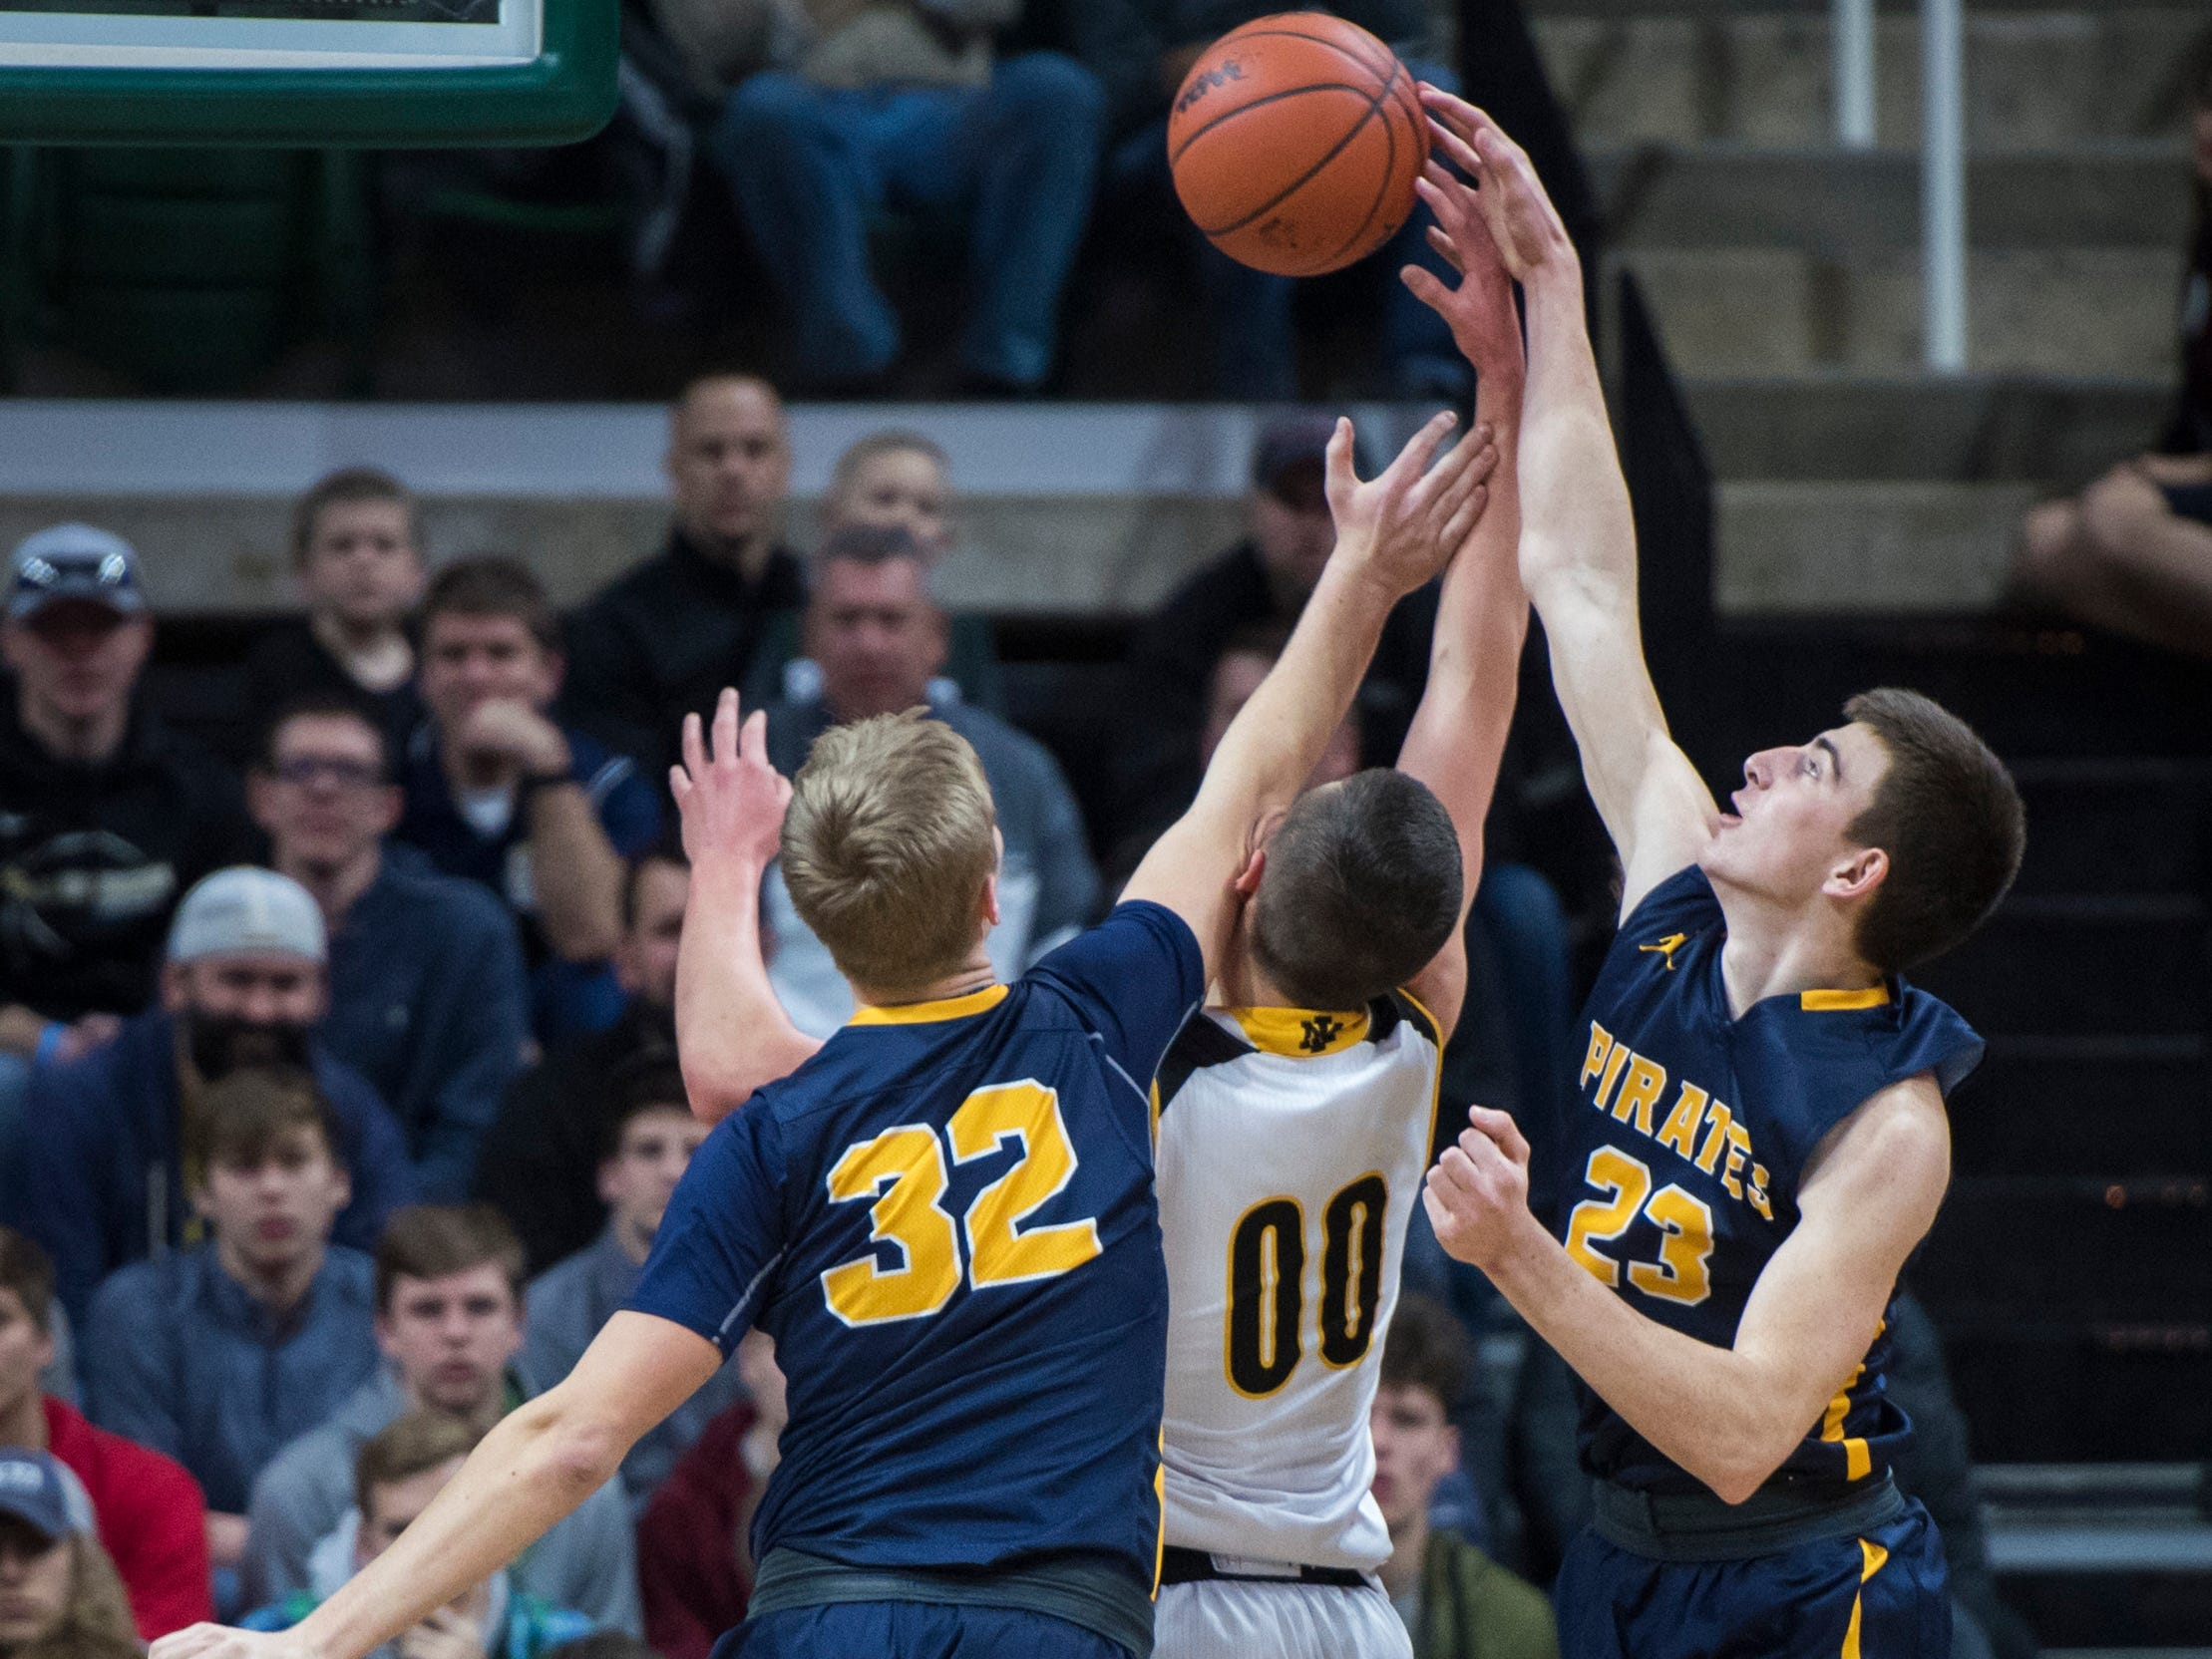 From left, Pewamo-Westphalia's Andre Smith, Iron Mountain's Foster Wonders and Pewamo-Westphalia's Aaron Bearss jump for a loose ball in the first half.